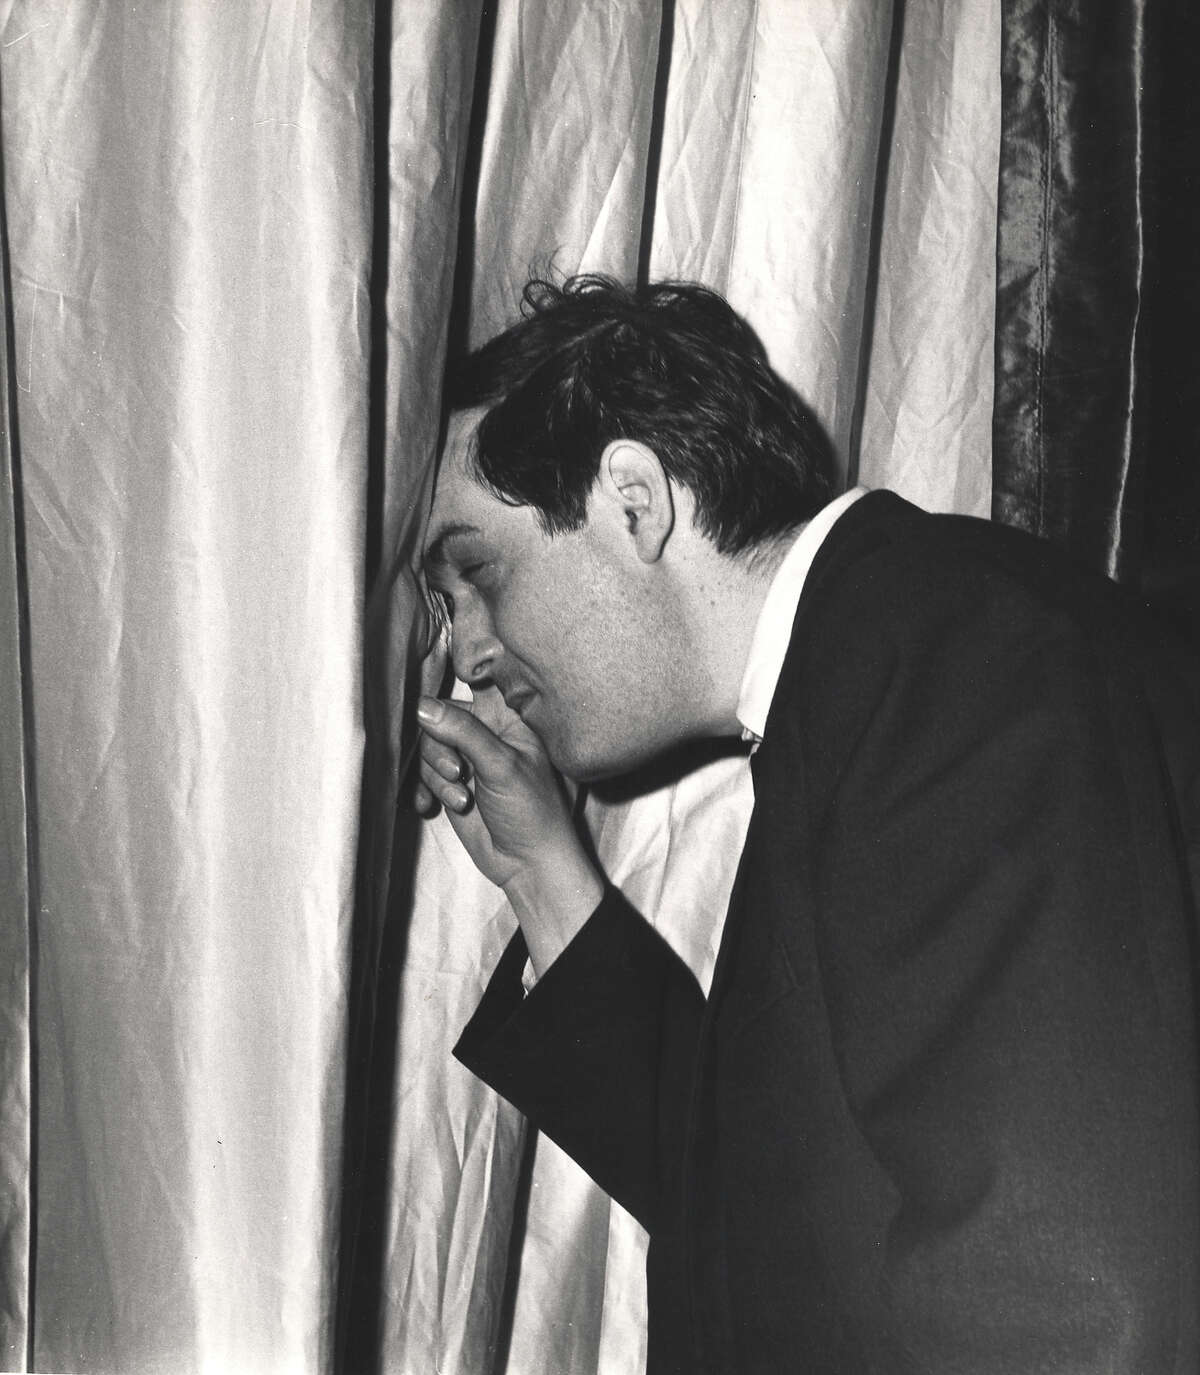 American film director Stanley Kubrick peeks through a curtain on the set of his film 'Dr. Strangelove, Or How I Learned to Stop Worrying and Love the Bomb' (1964) England, early 1963.